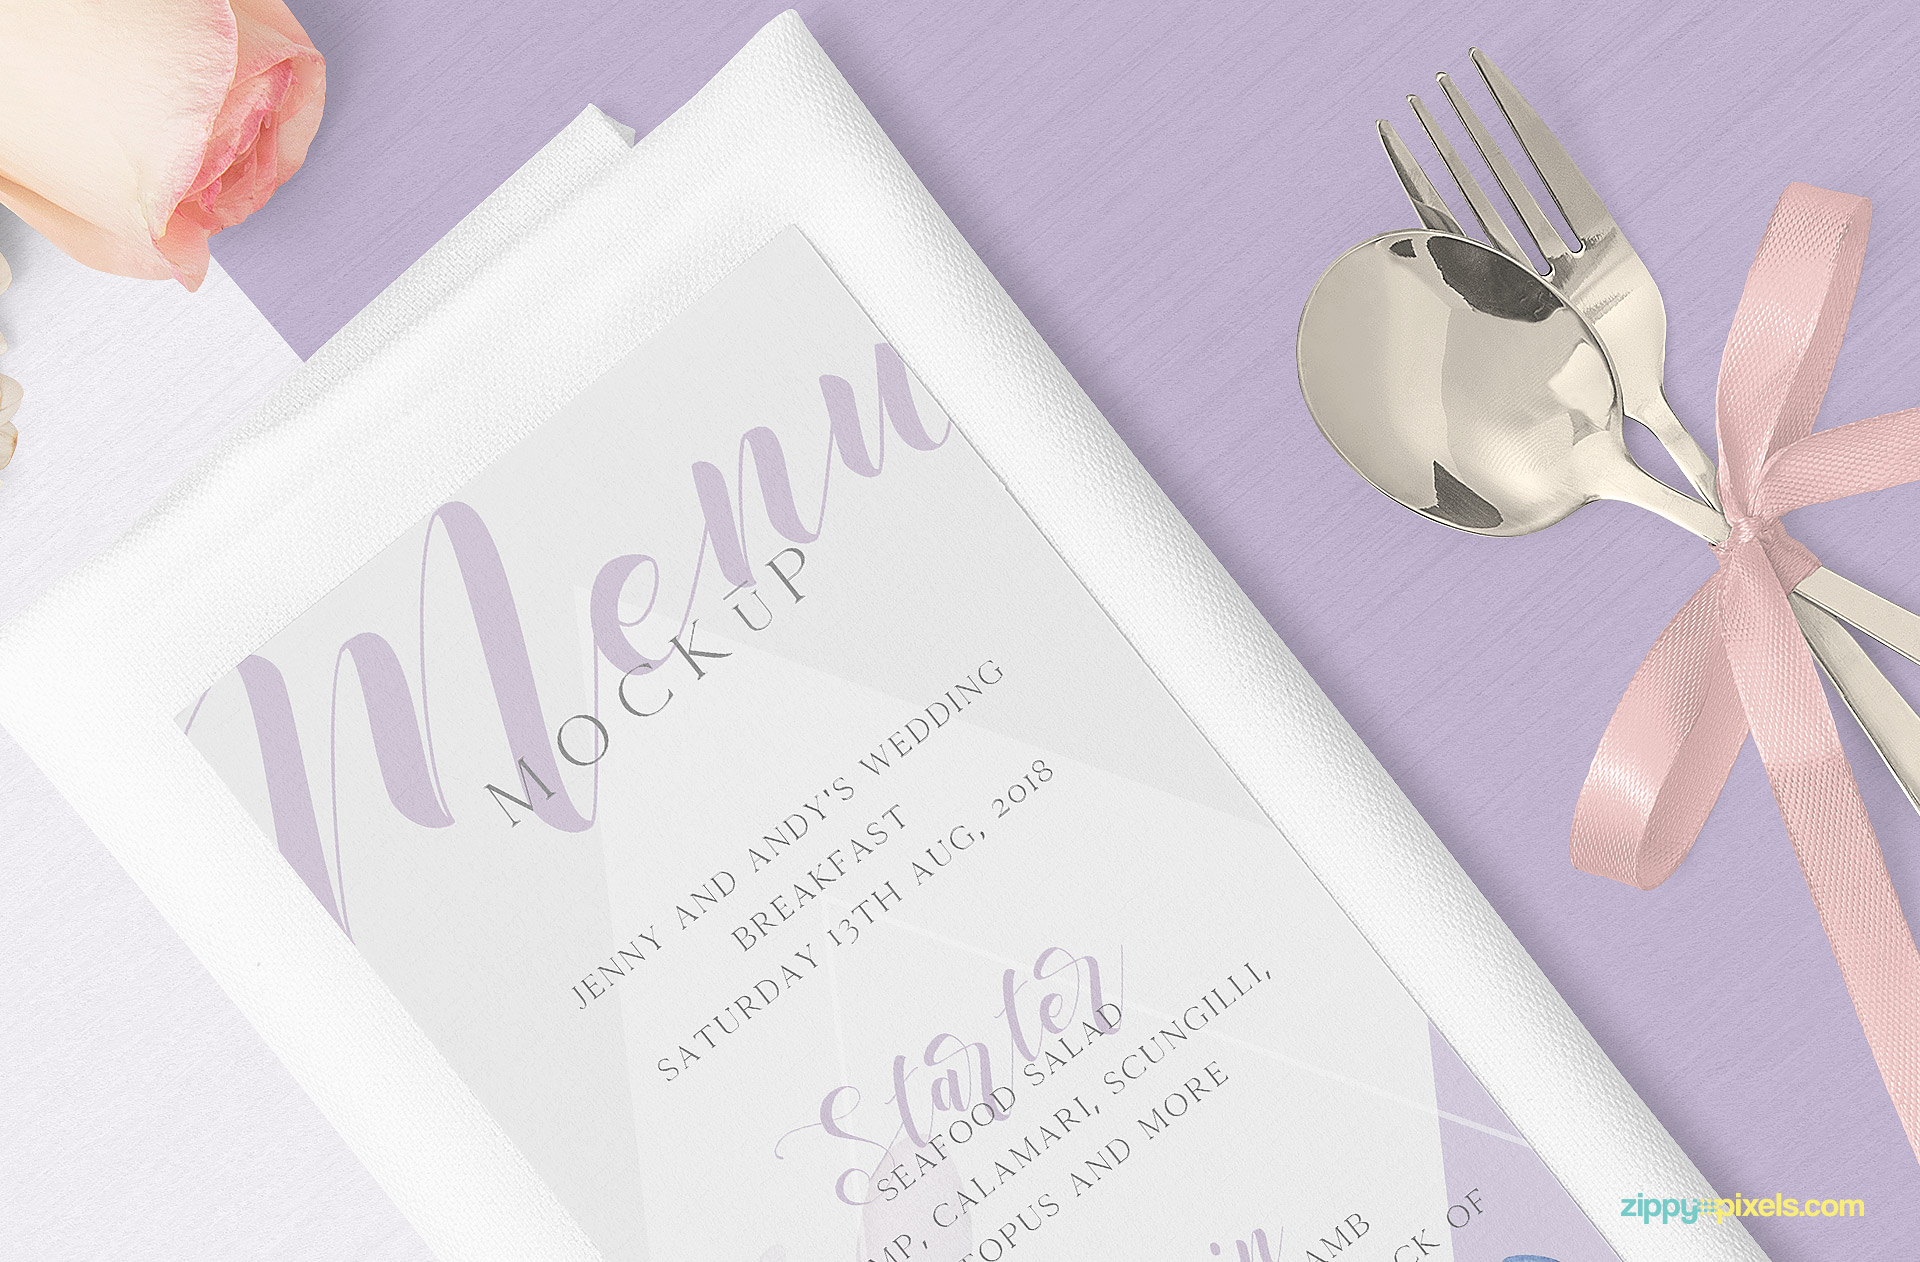 Single page menu mockup placed on napkin.